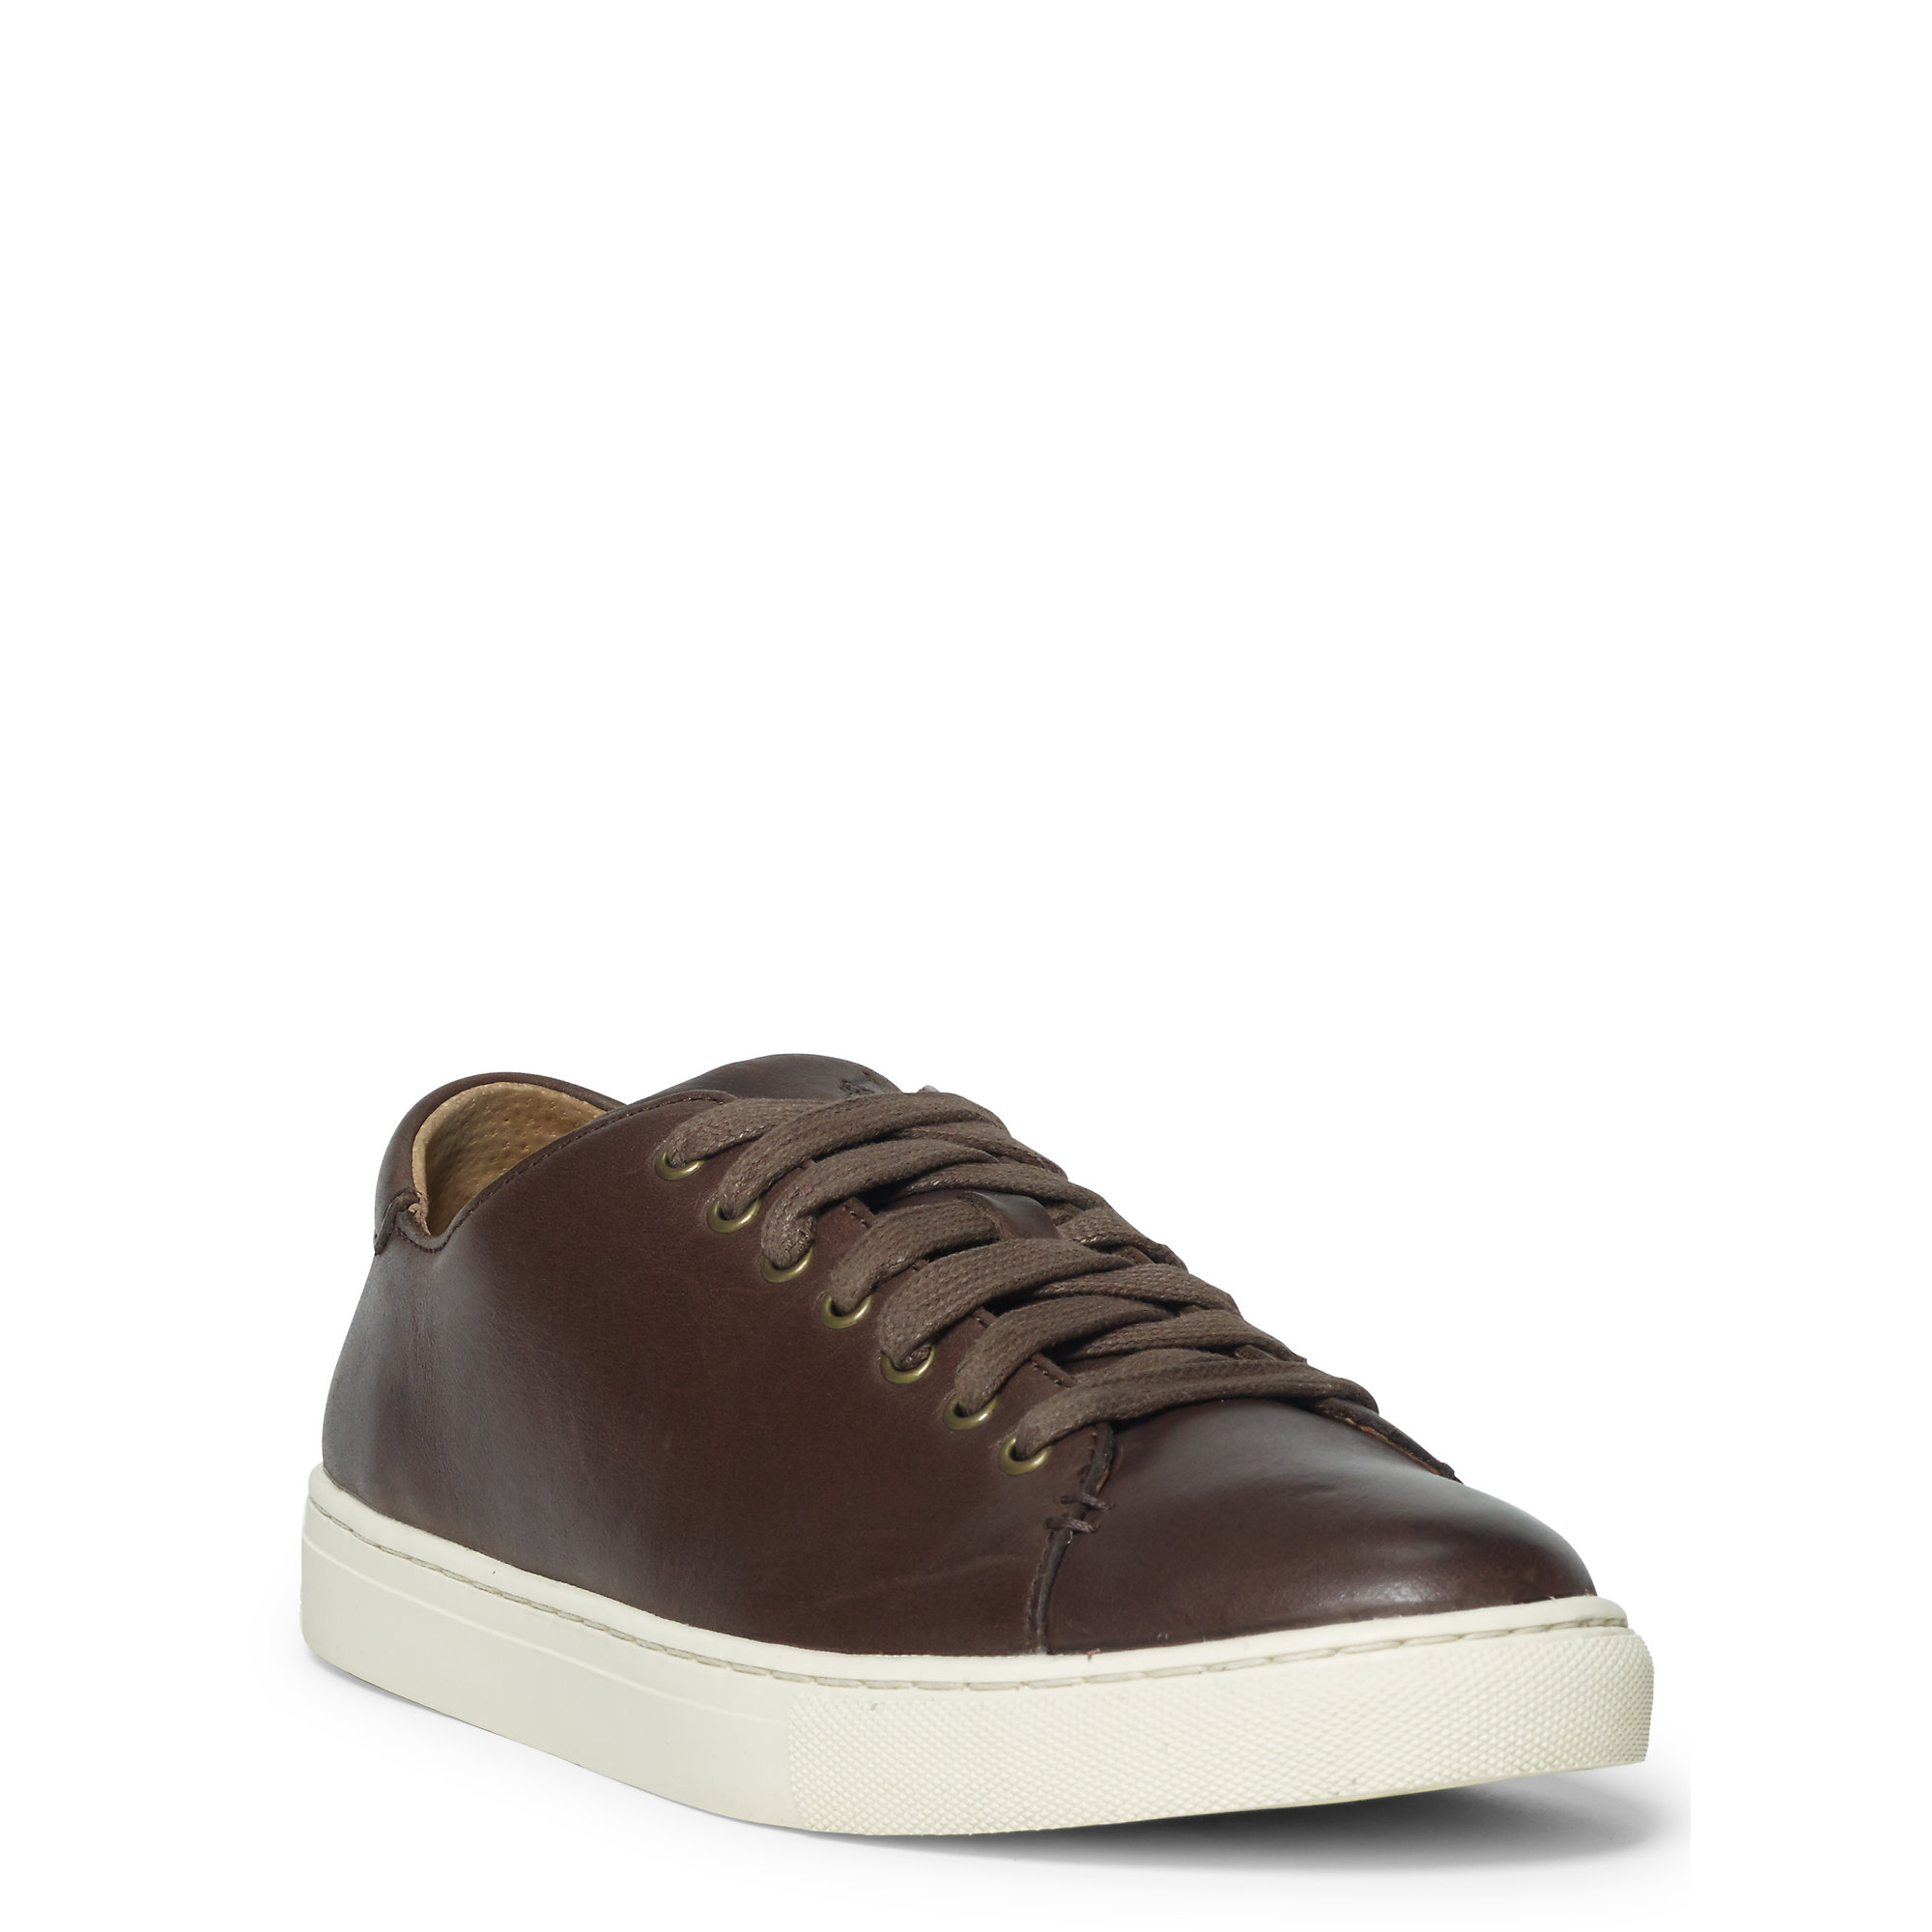 polo ralph lauren jermain leather sneaker in brown for men lyst. Black Bedroom Furniture Sets. Home Design Ideas